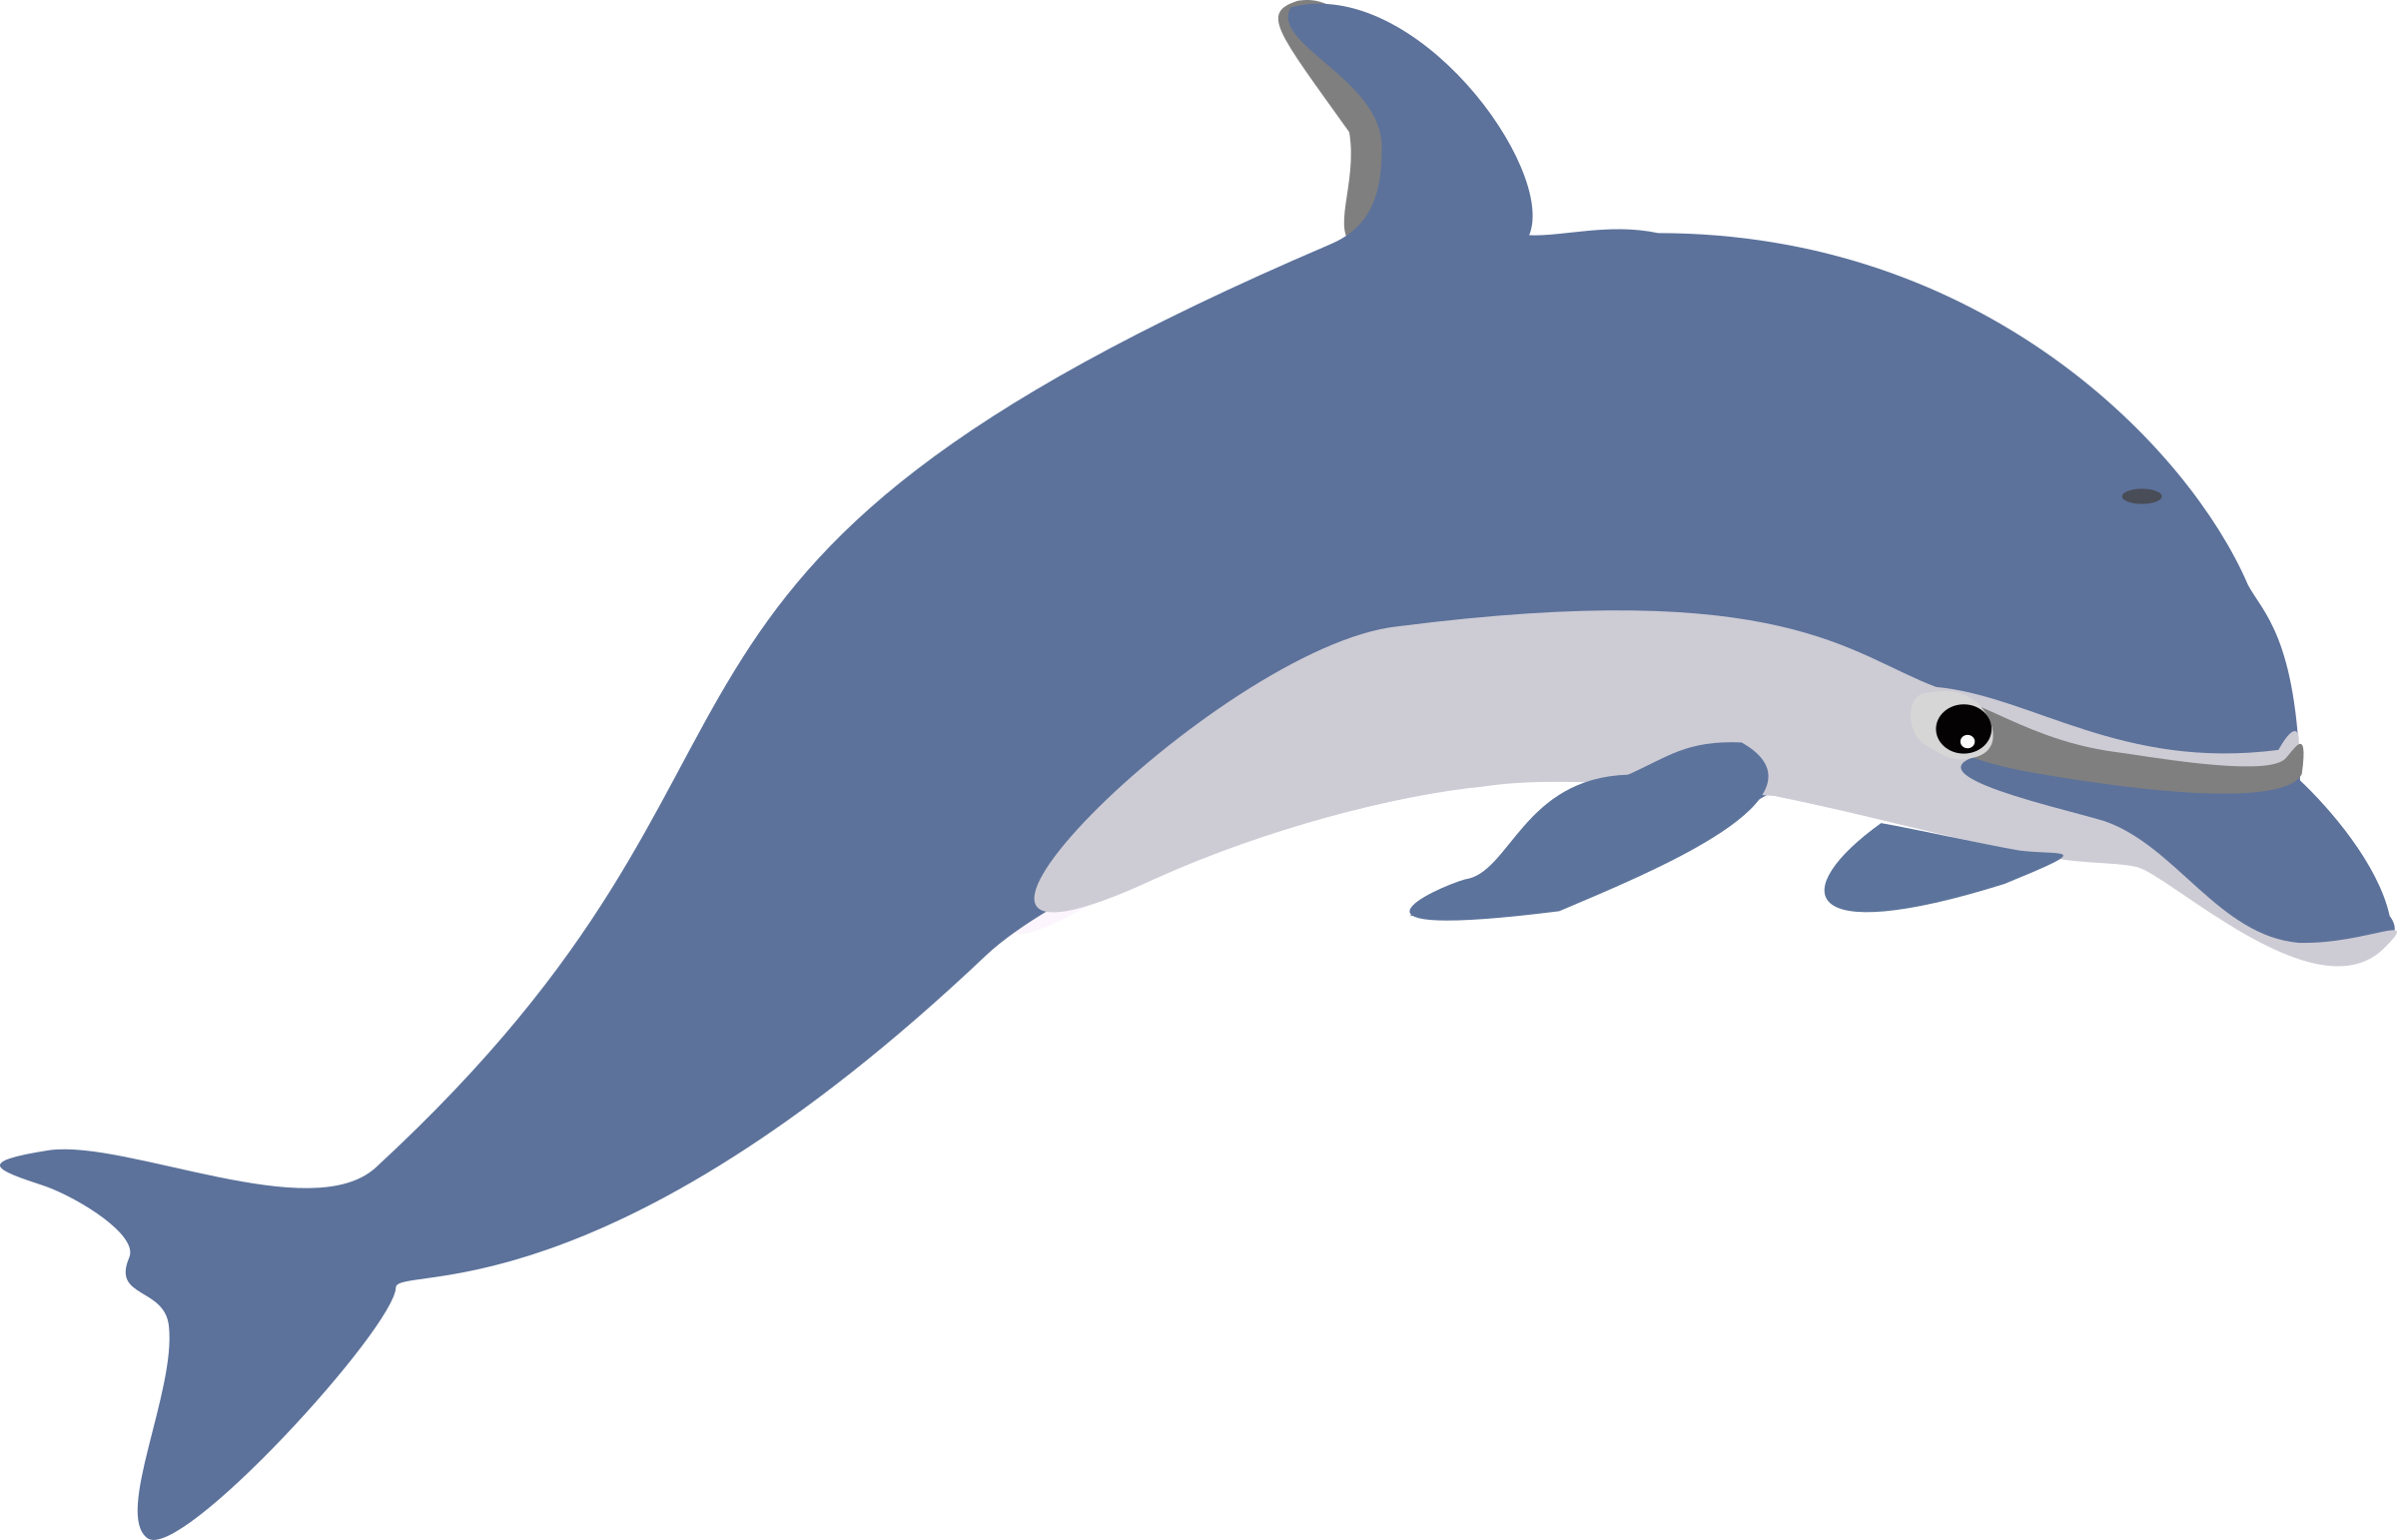 Clipart dolphin scene. Dolphins reading pencil and